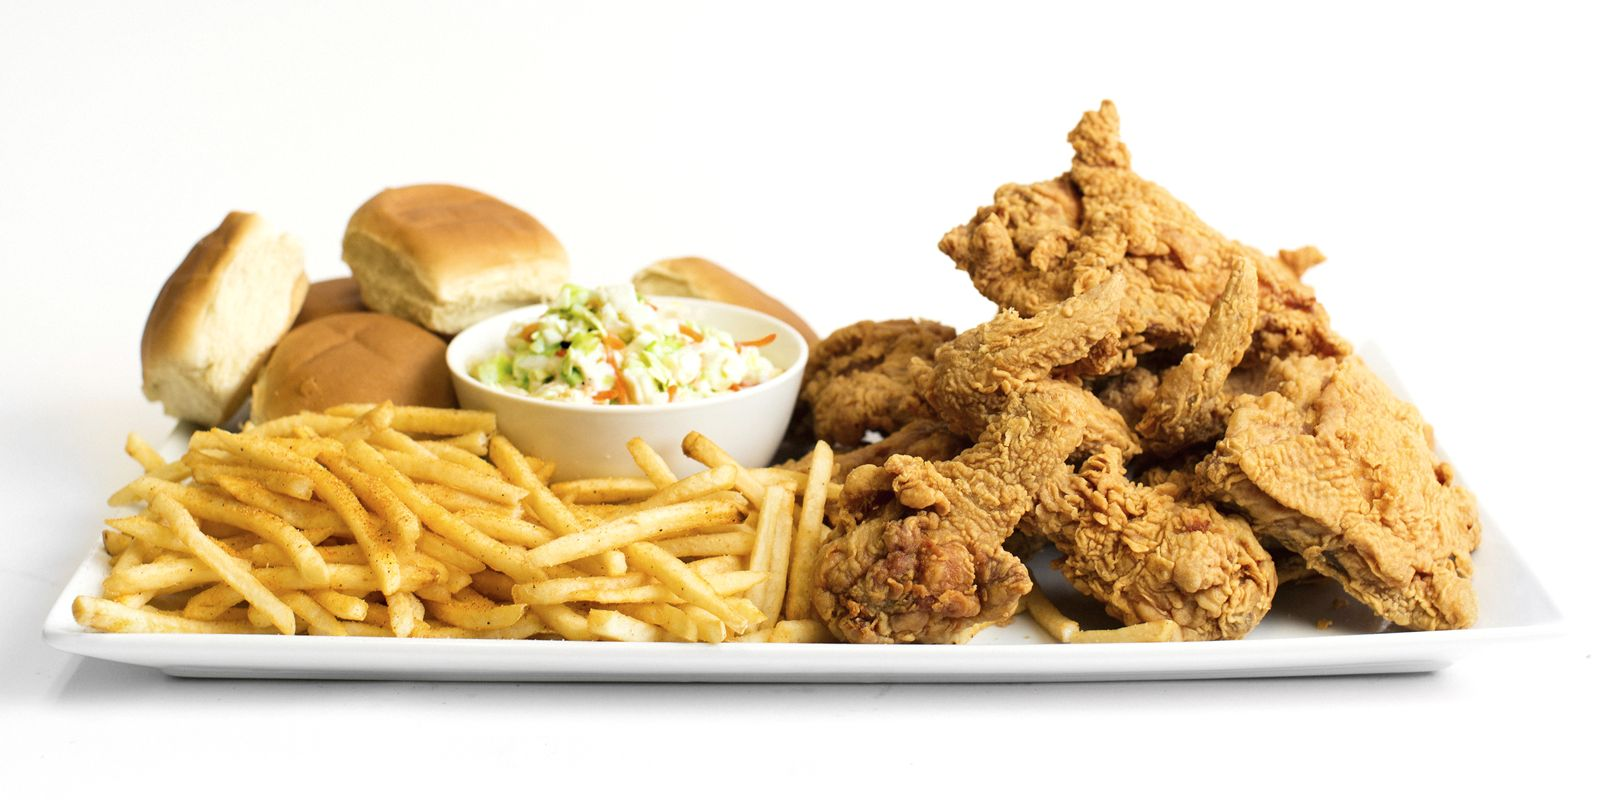 Southern Classic Chicken Announces Franchise Opportunity After 30 Years in Business